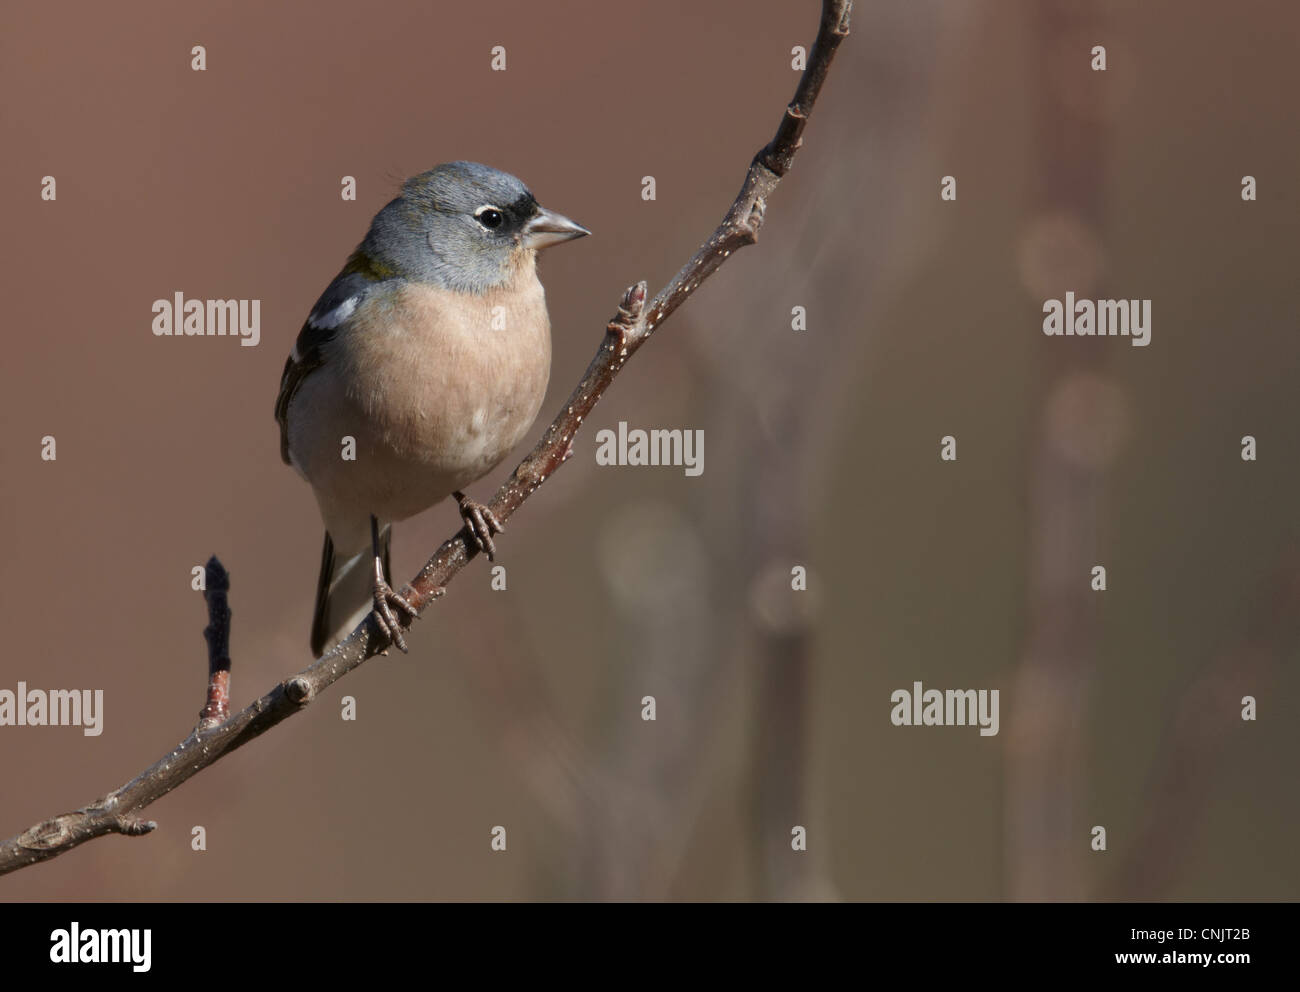 Chaffinch (Fringilla coelebs africana) North African subspecies, adult male, perched on twig, Morocco, february - Stock Image